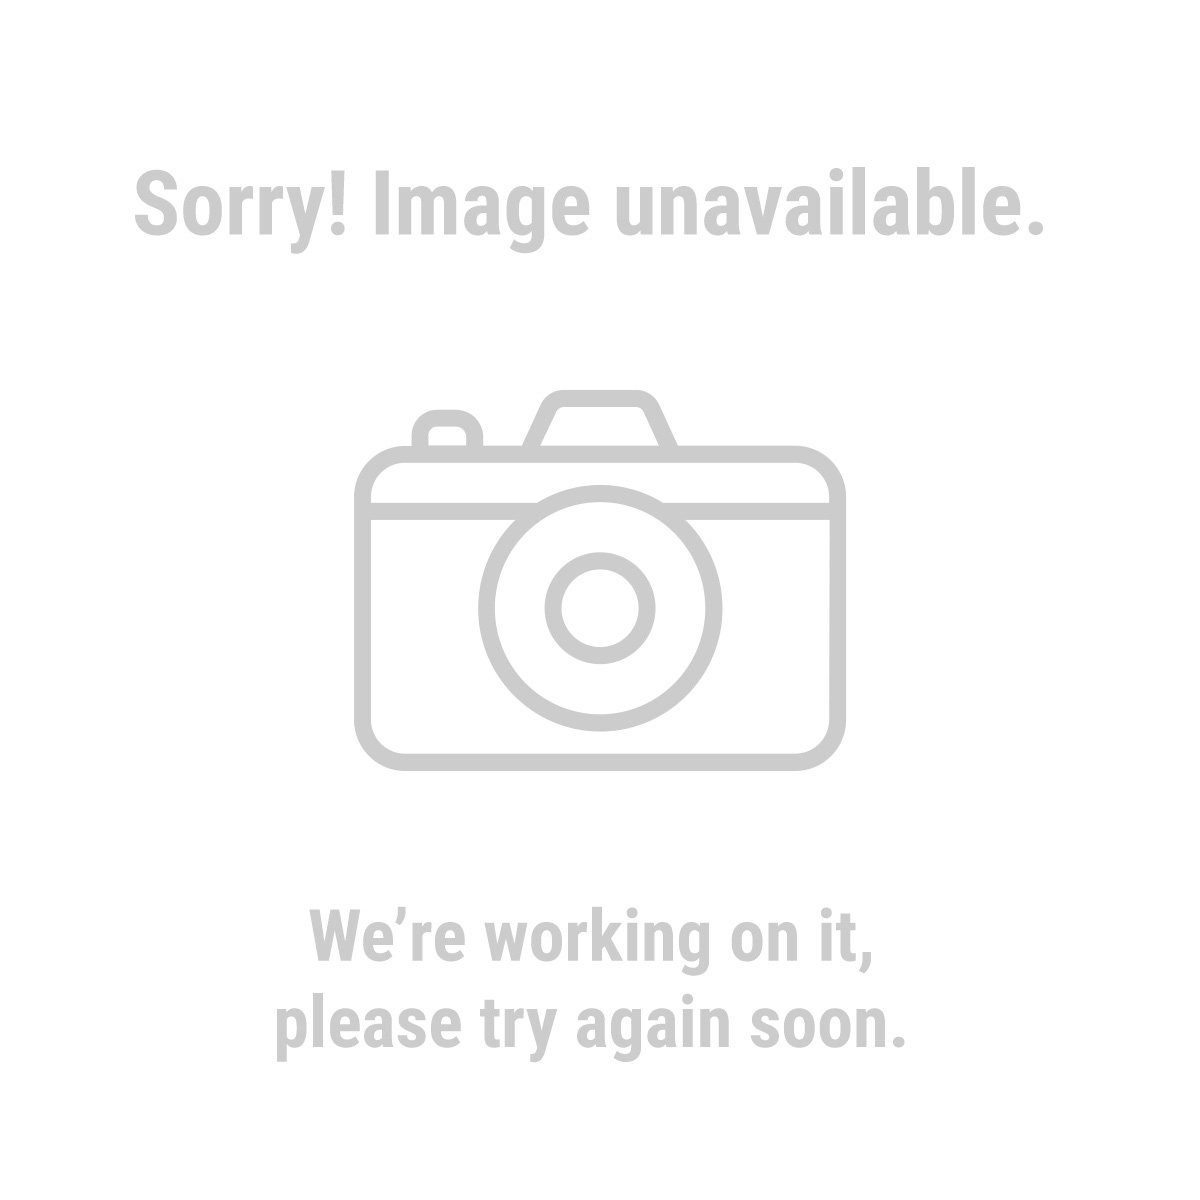 "Warrior® 47571 4"" Grinding Wheel, Cutoff Wheel, and Flap Disc Assortment for Metal - Pack of 10"